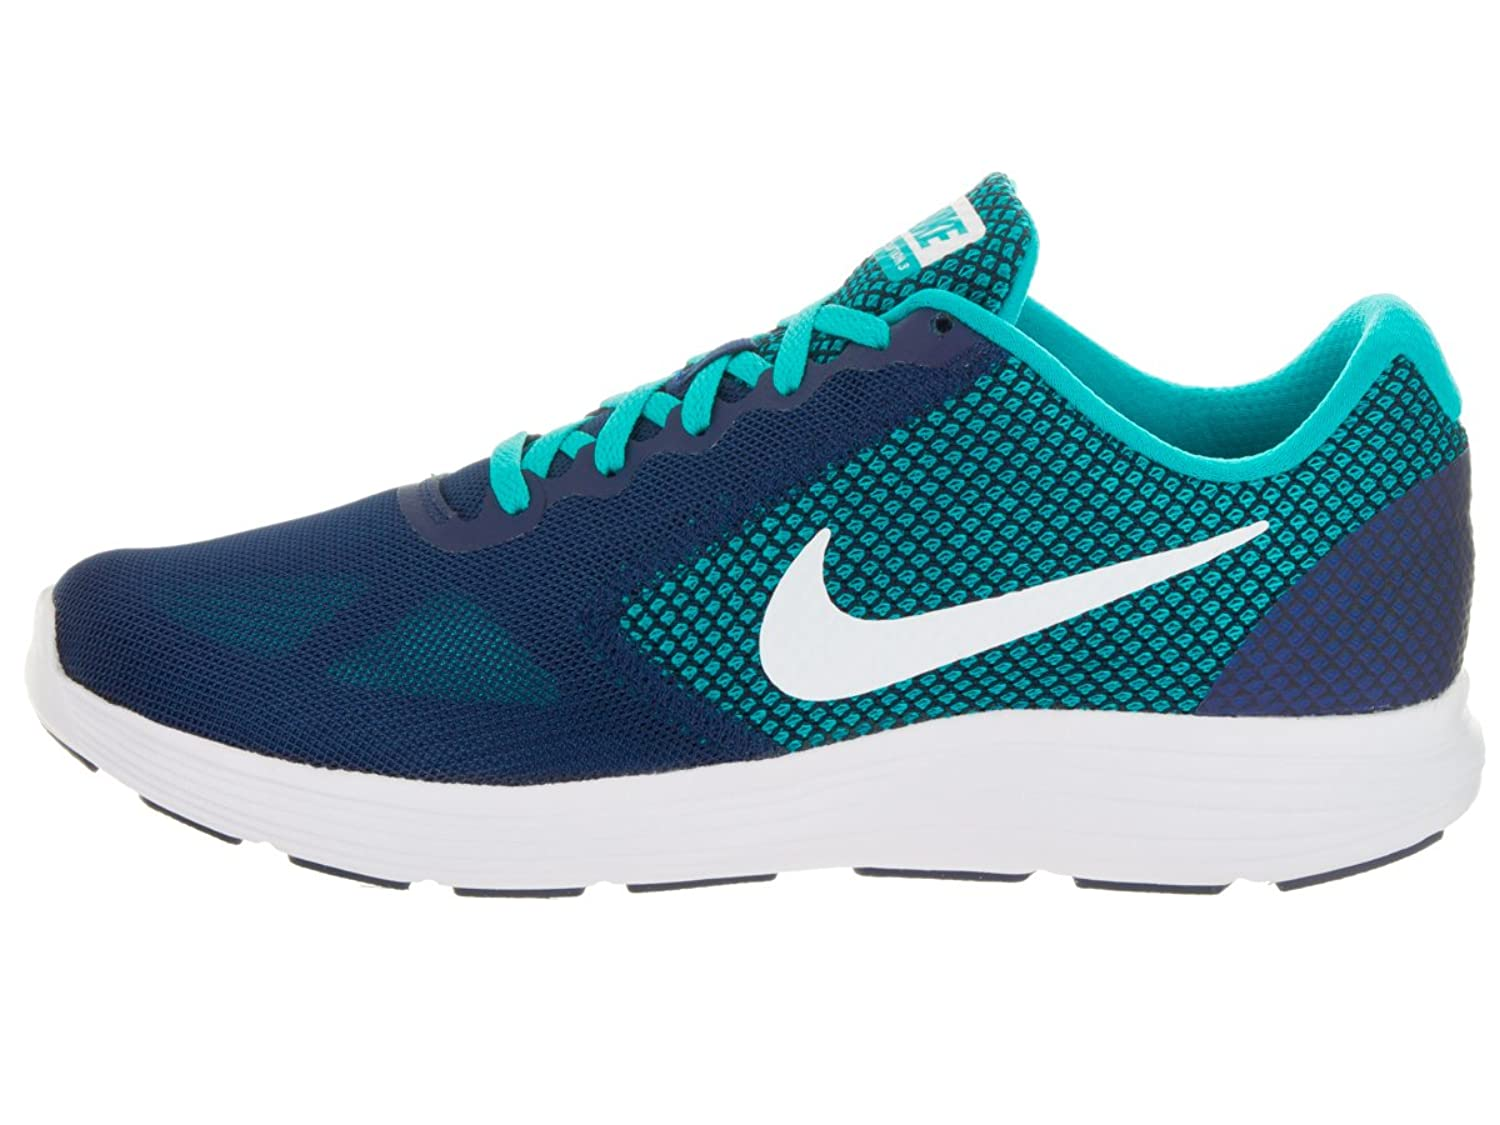 Nike Revolution 3 Men\u0027s Running Shoes 819300-405: Buy Online at Low Prices  in India - Amazon.in